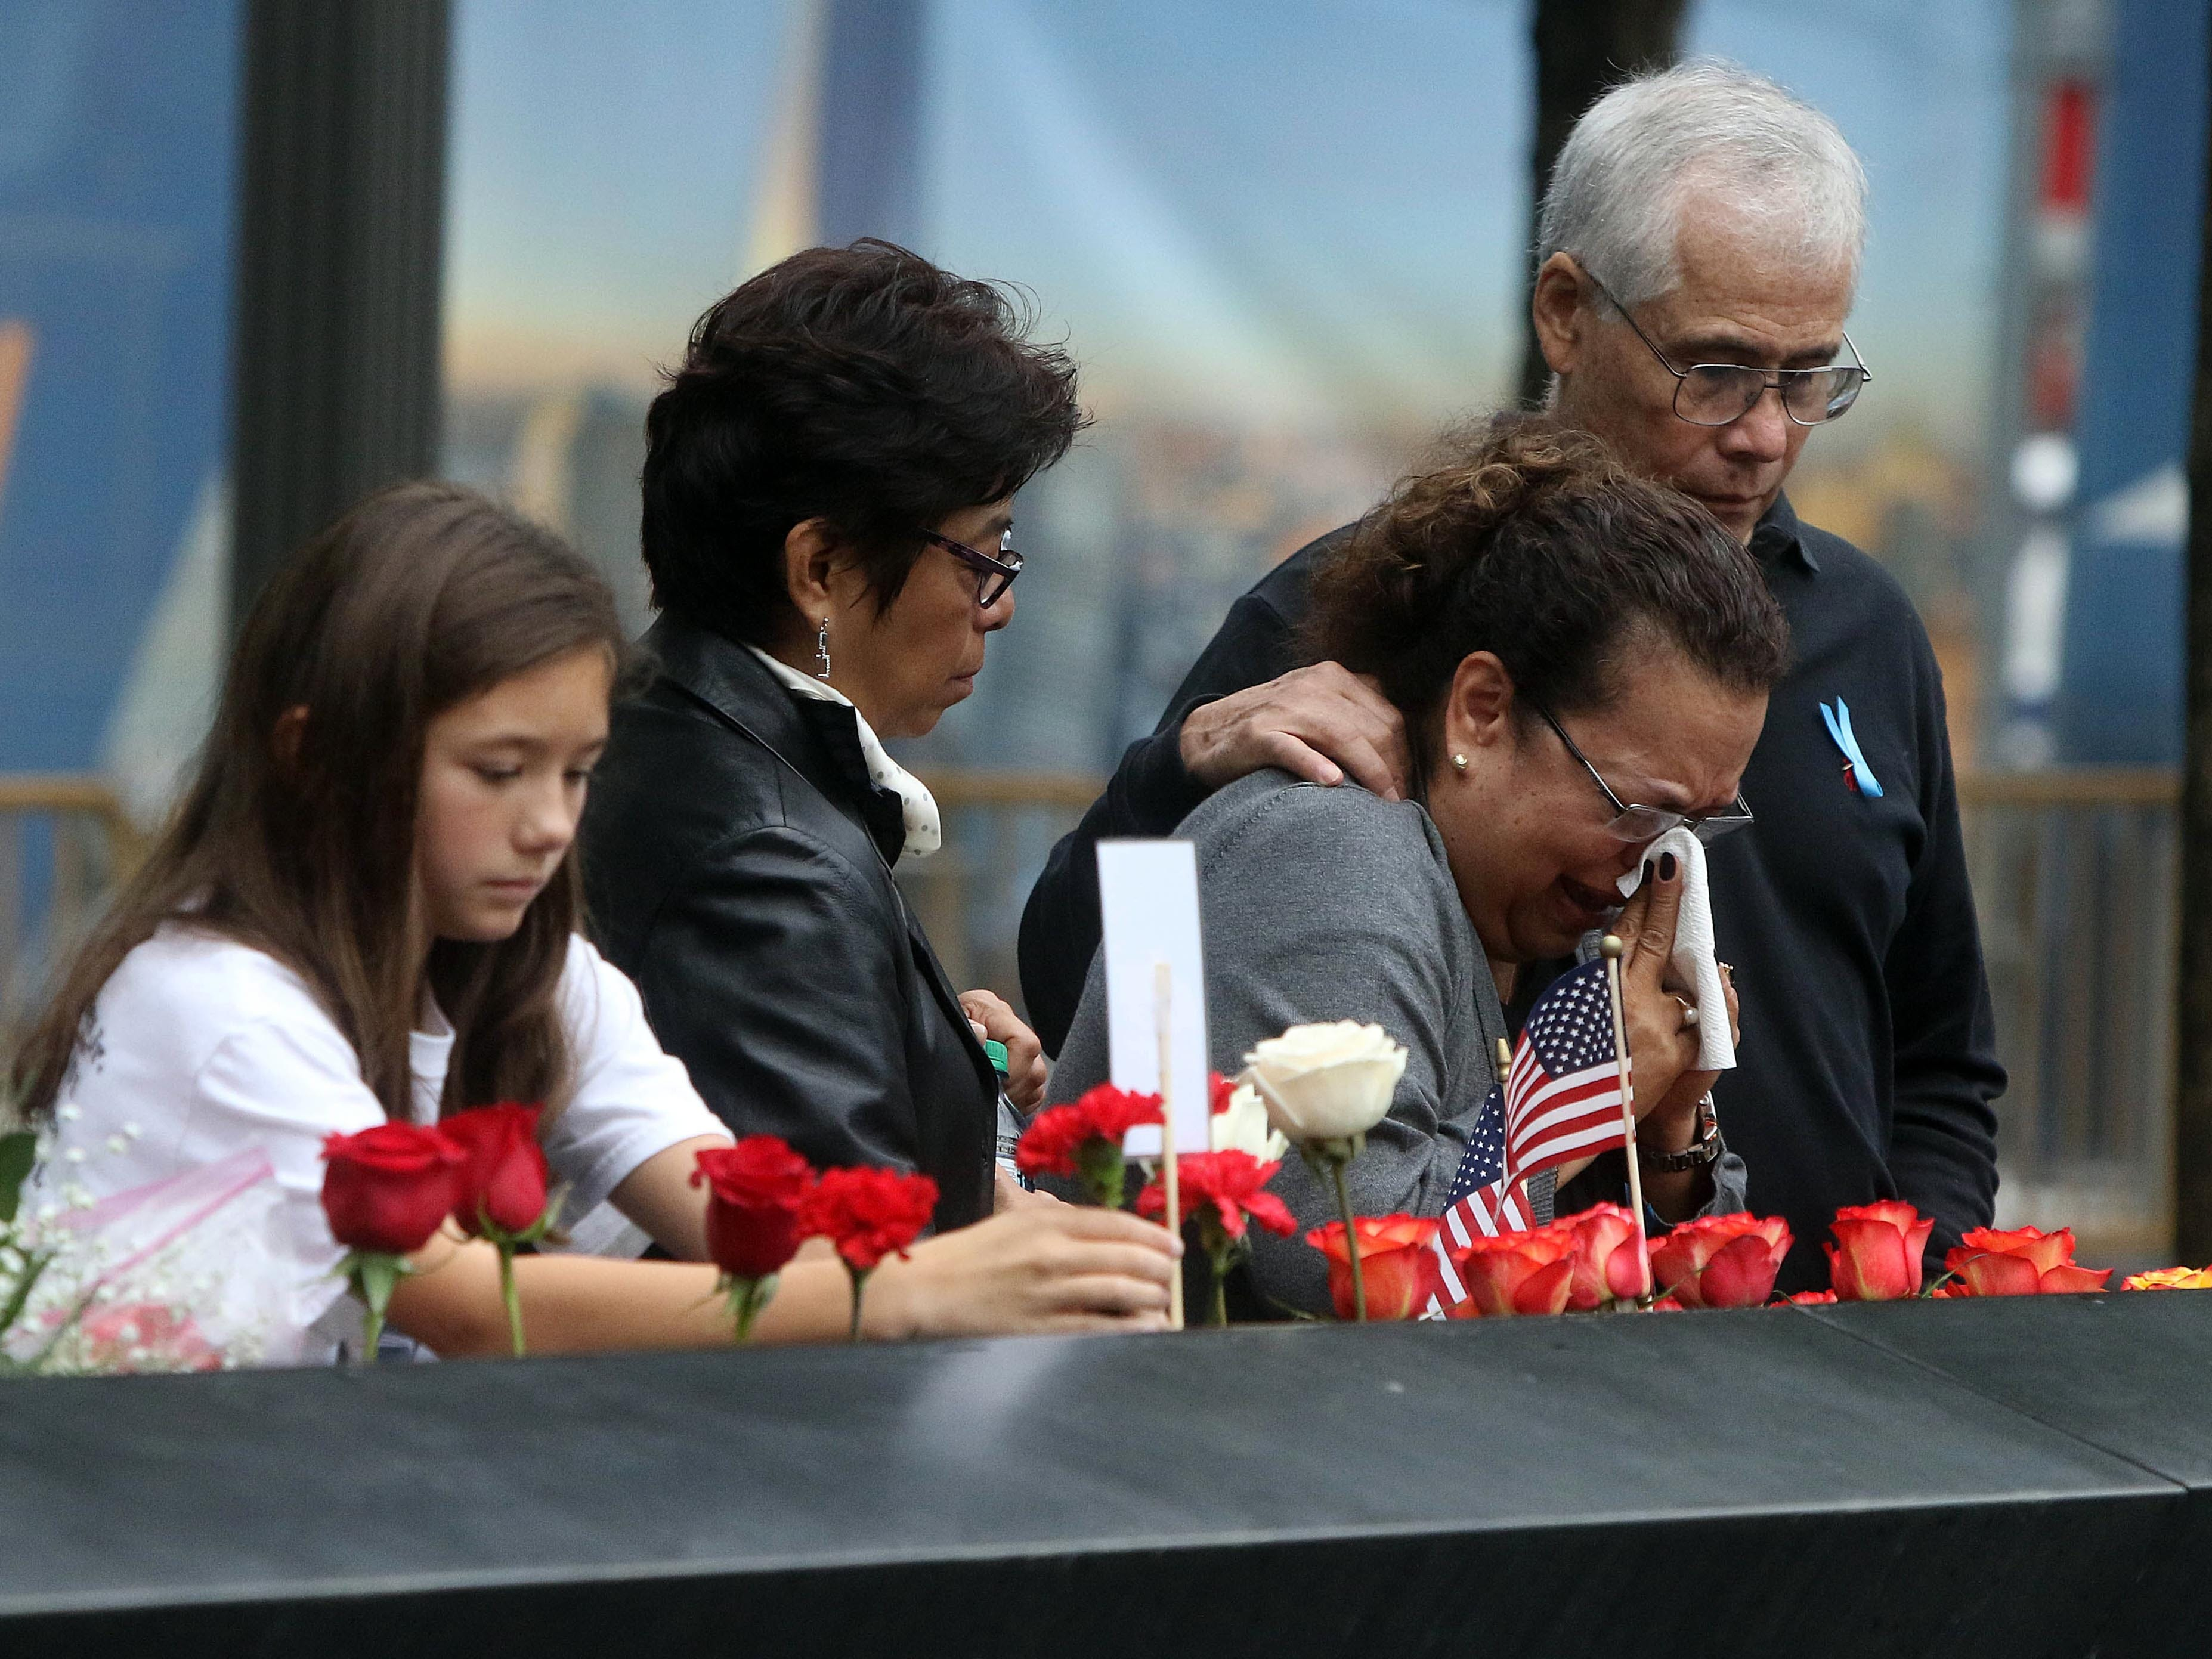 People visit the North Tower Memorial during ceremonies at the National September 11 Memorial, Sept. 11, 2018, in New York.